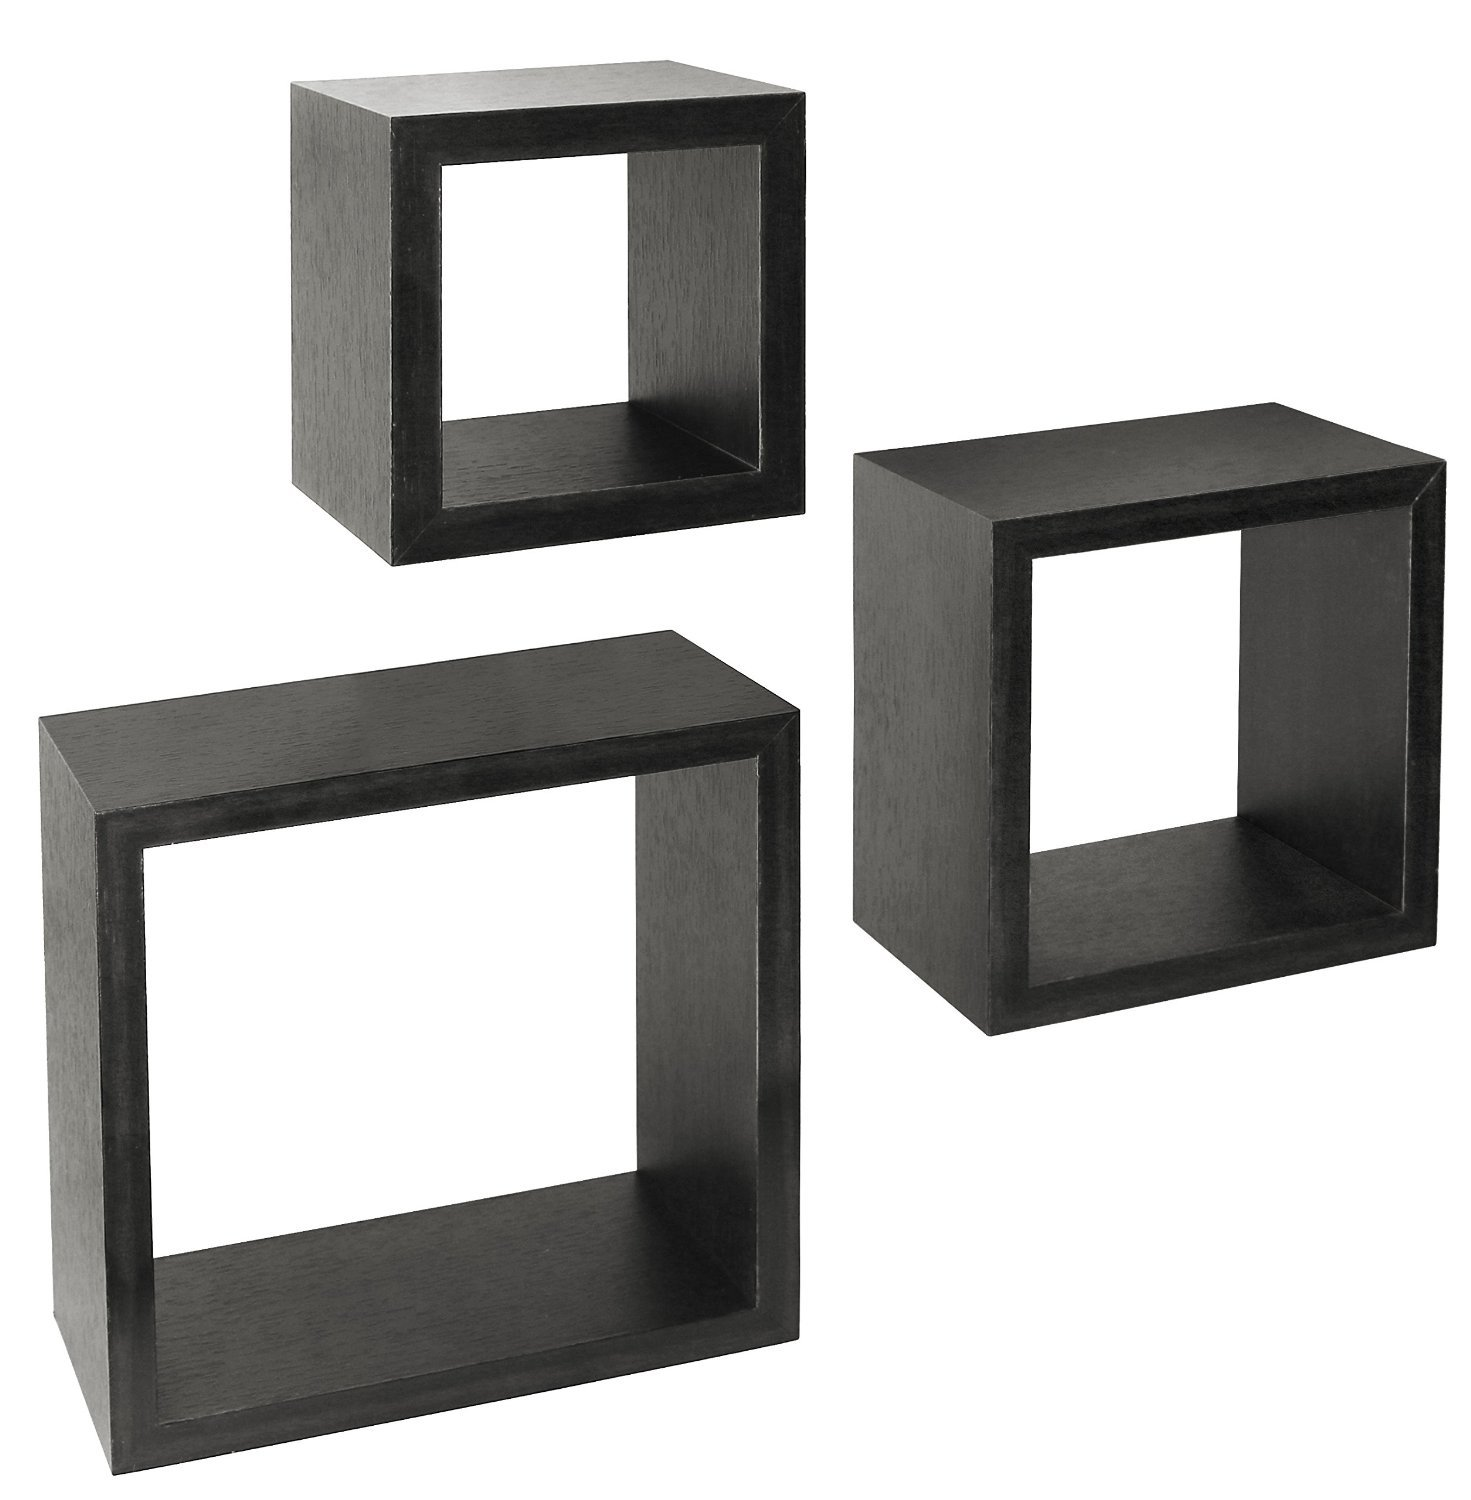 Greenco Set of 3 Floating Cube Shelves, Espresso Finish - Set of 3 size shelves Made of durable MDF laminate Beautiful espresso finish that suits almost any decor Easy to mount with all necessary hardware Included - wall-shelves, living-room-furniture, living-room - 71tvv5IkVWL -